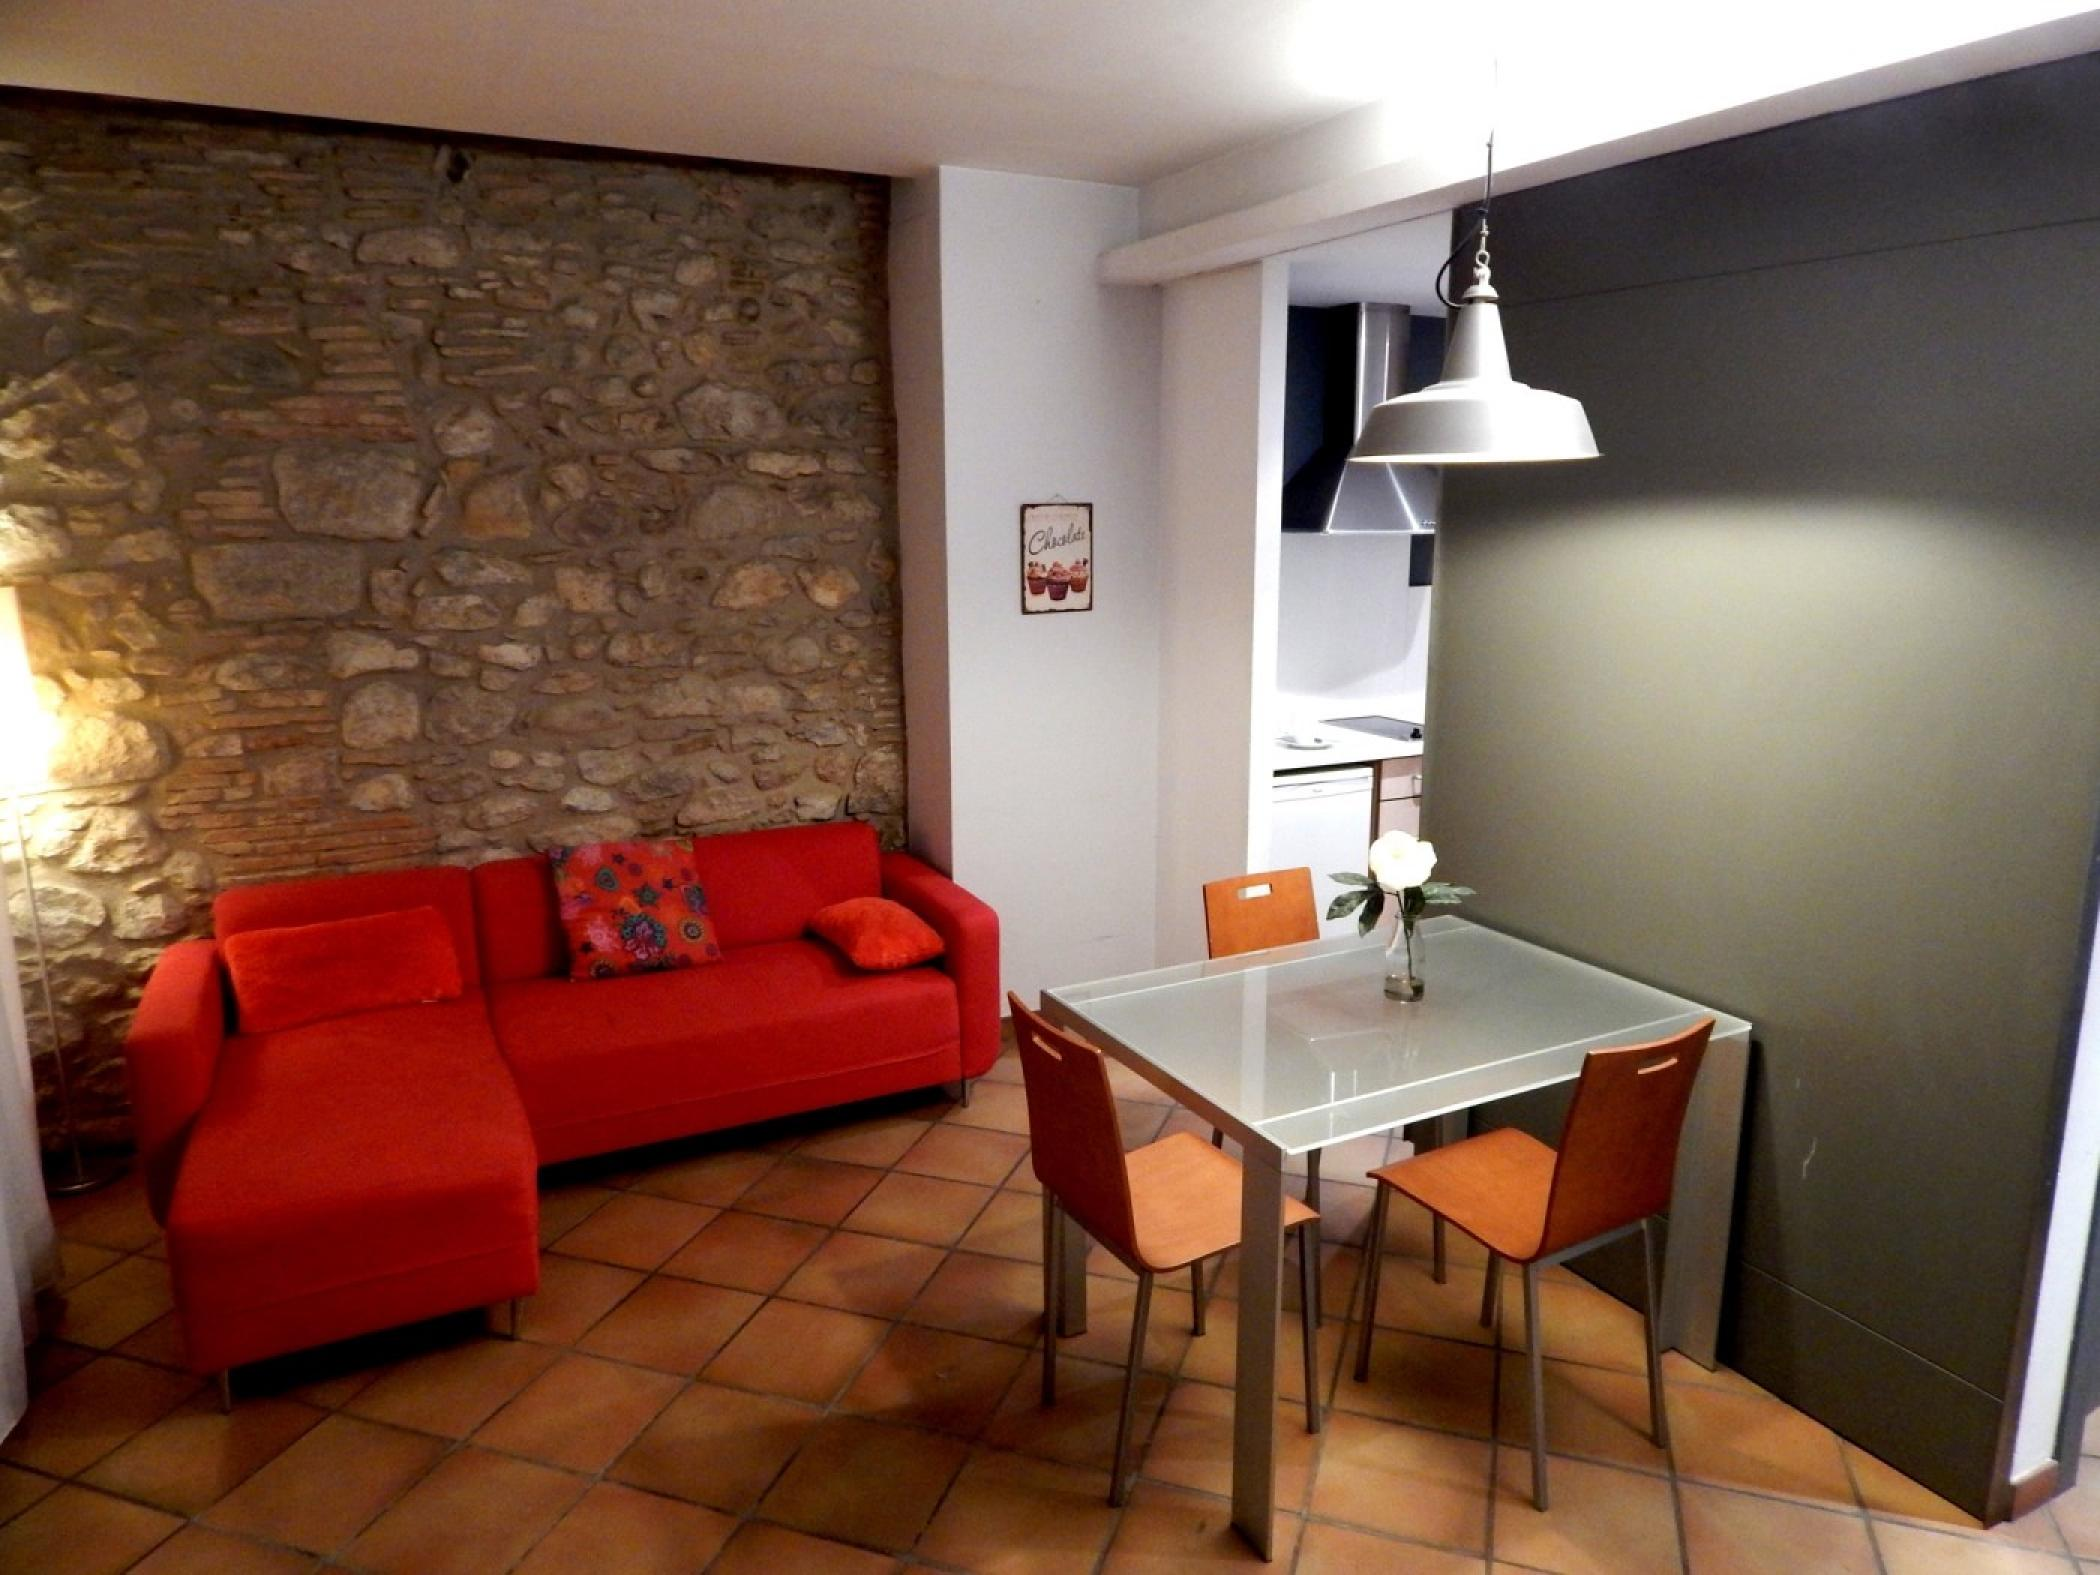 Rent Apartment in Girona - Girona Loft Muralla 2 - 1